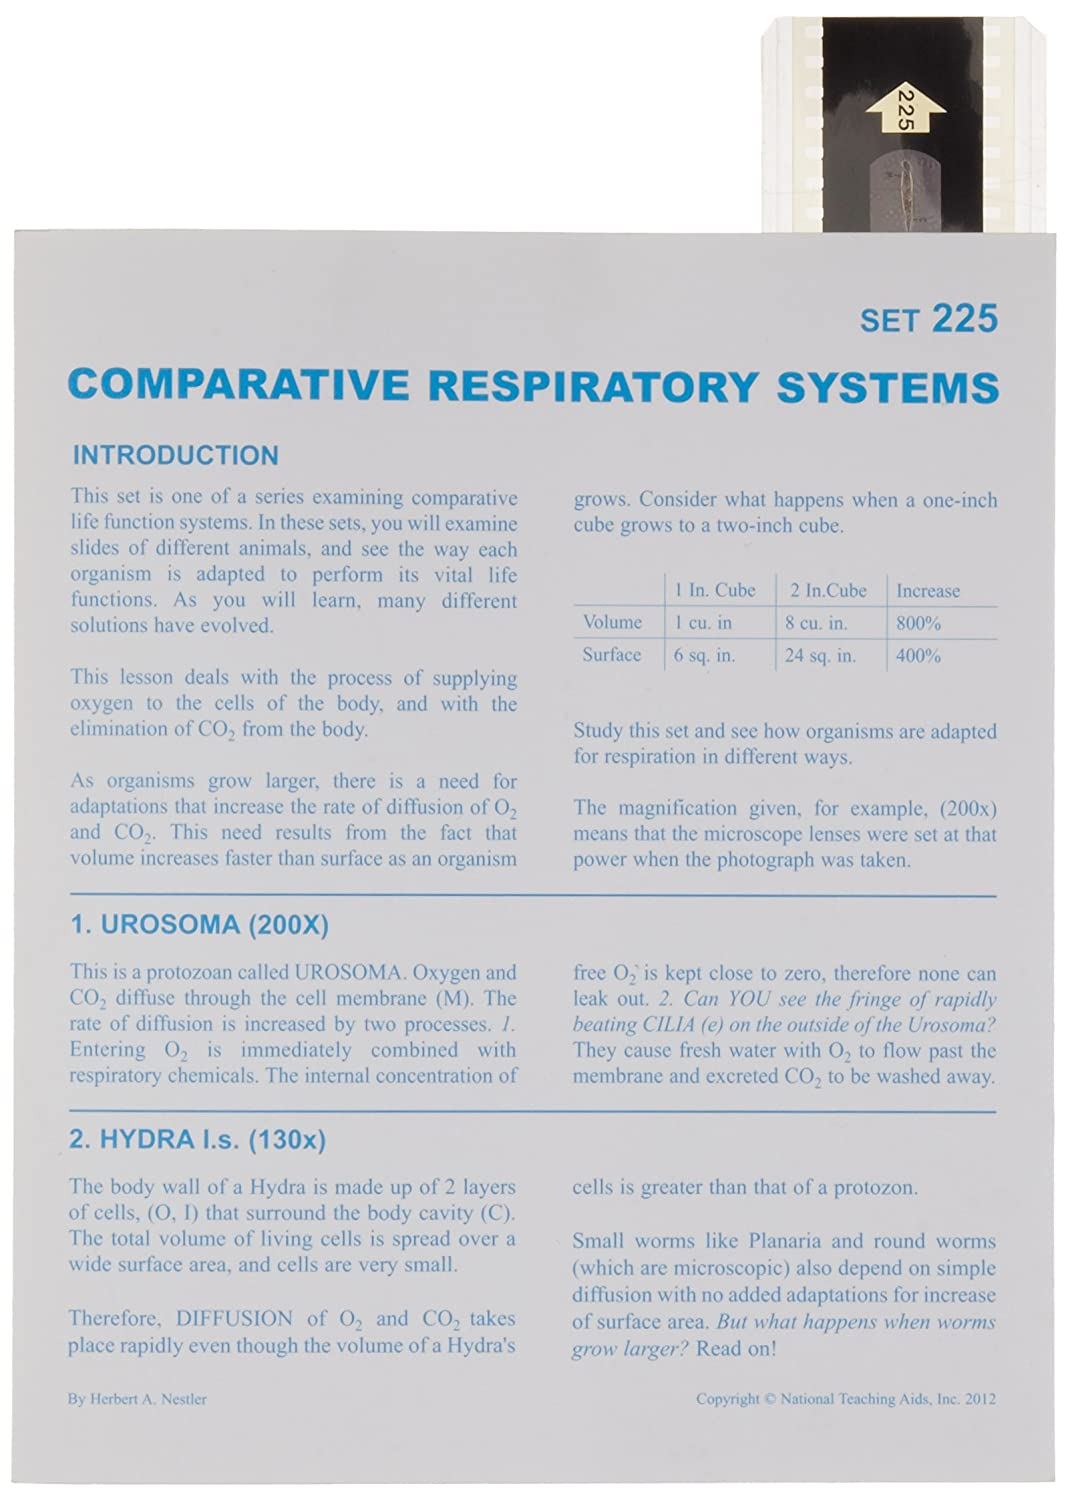 American Educational Microslide Comparative Respiratory System Lesson Plan Set T-225